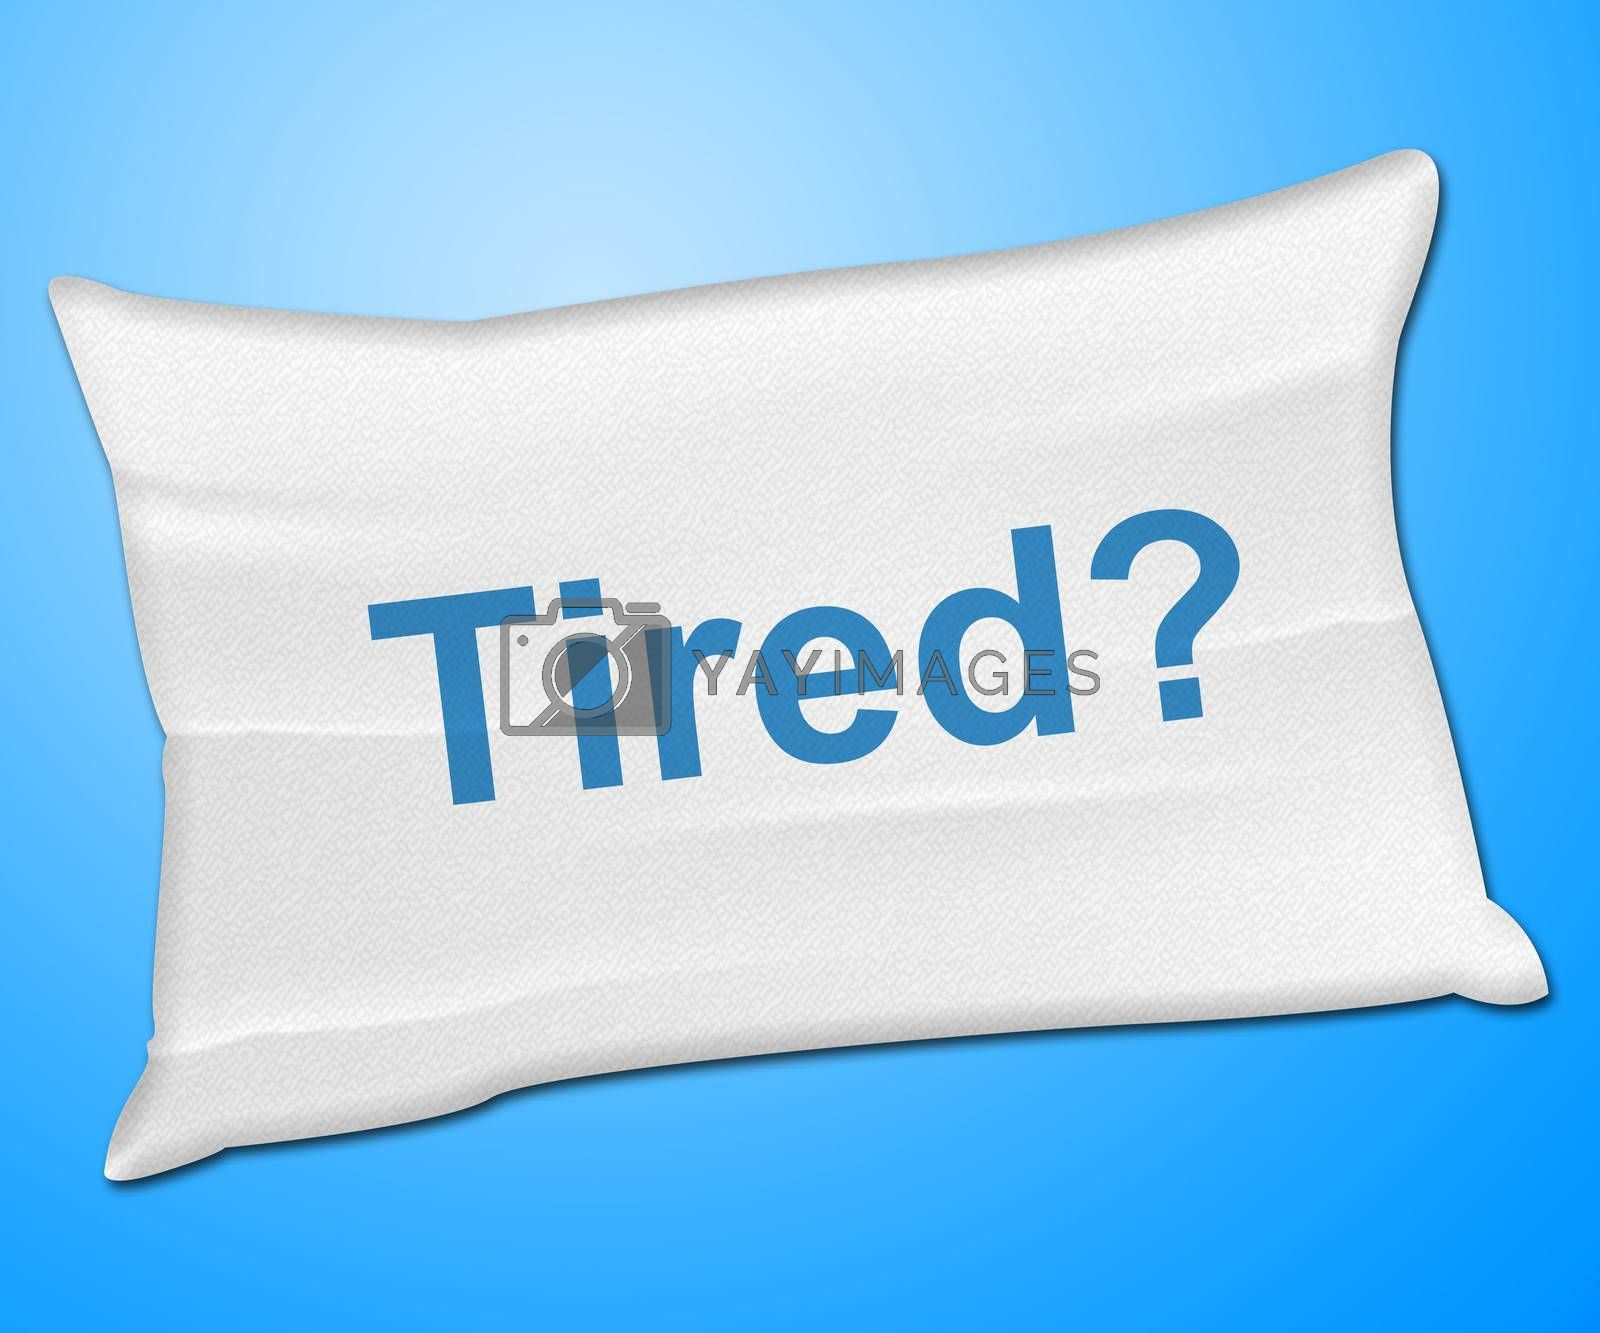 Tired Pillow Represents Bed Insomnia And Bedding by stuartmiles